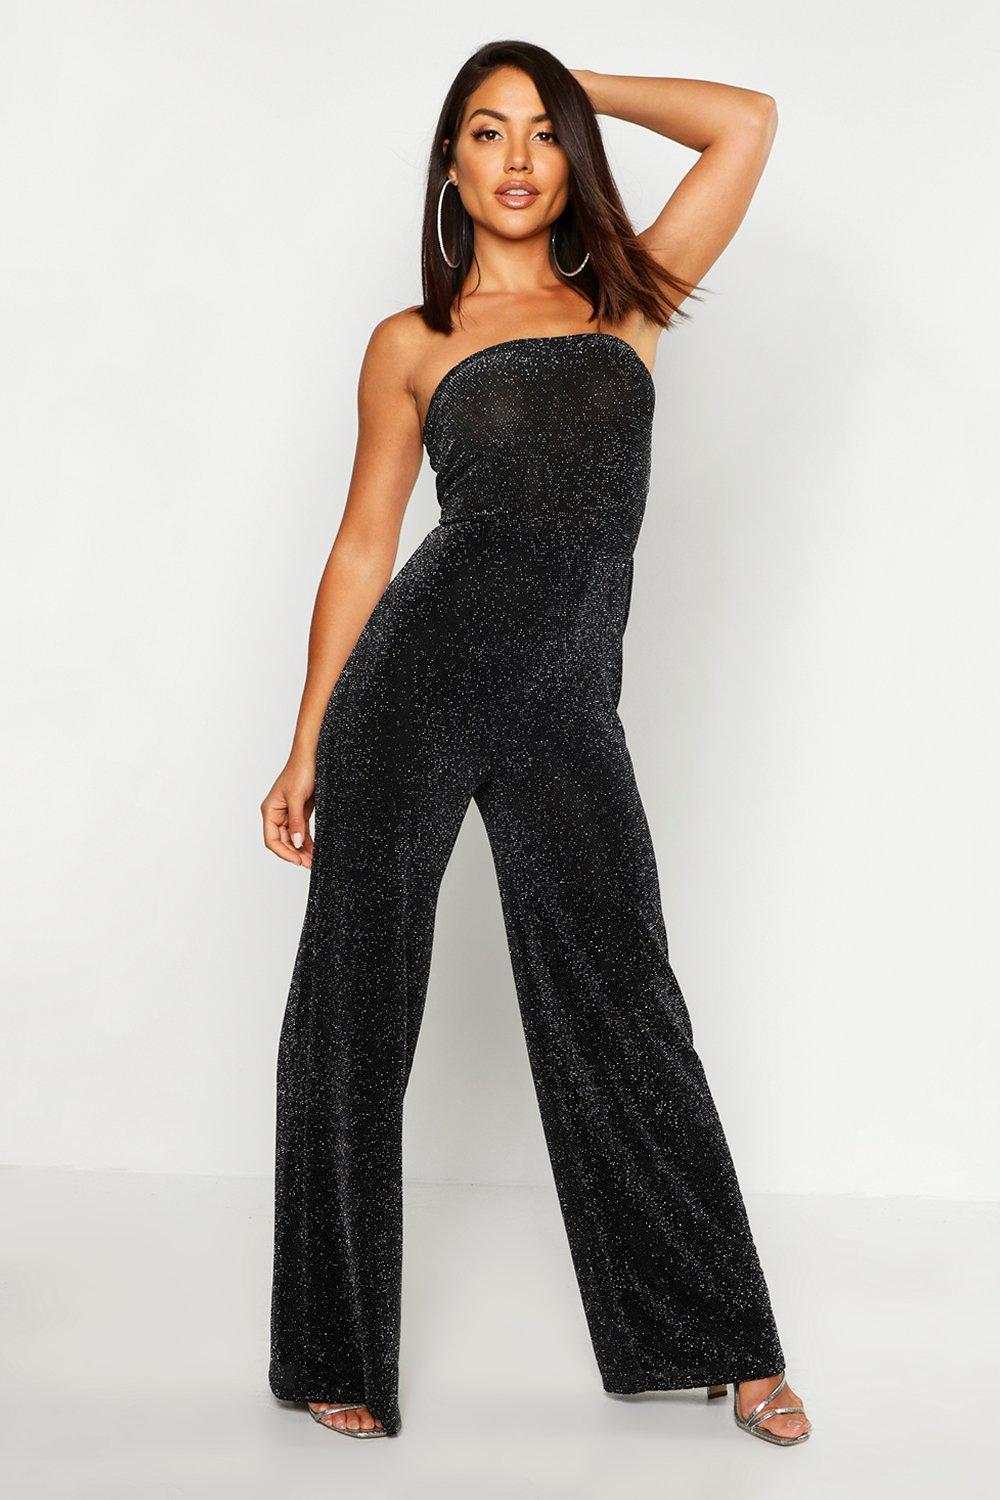 70s Outfits – 70s Style Ideas for Women Womens Strapless Wide Leg Sparkle Jumpsuit - black - 14 $42.00 AT vintagedancer.com